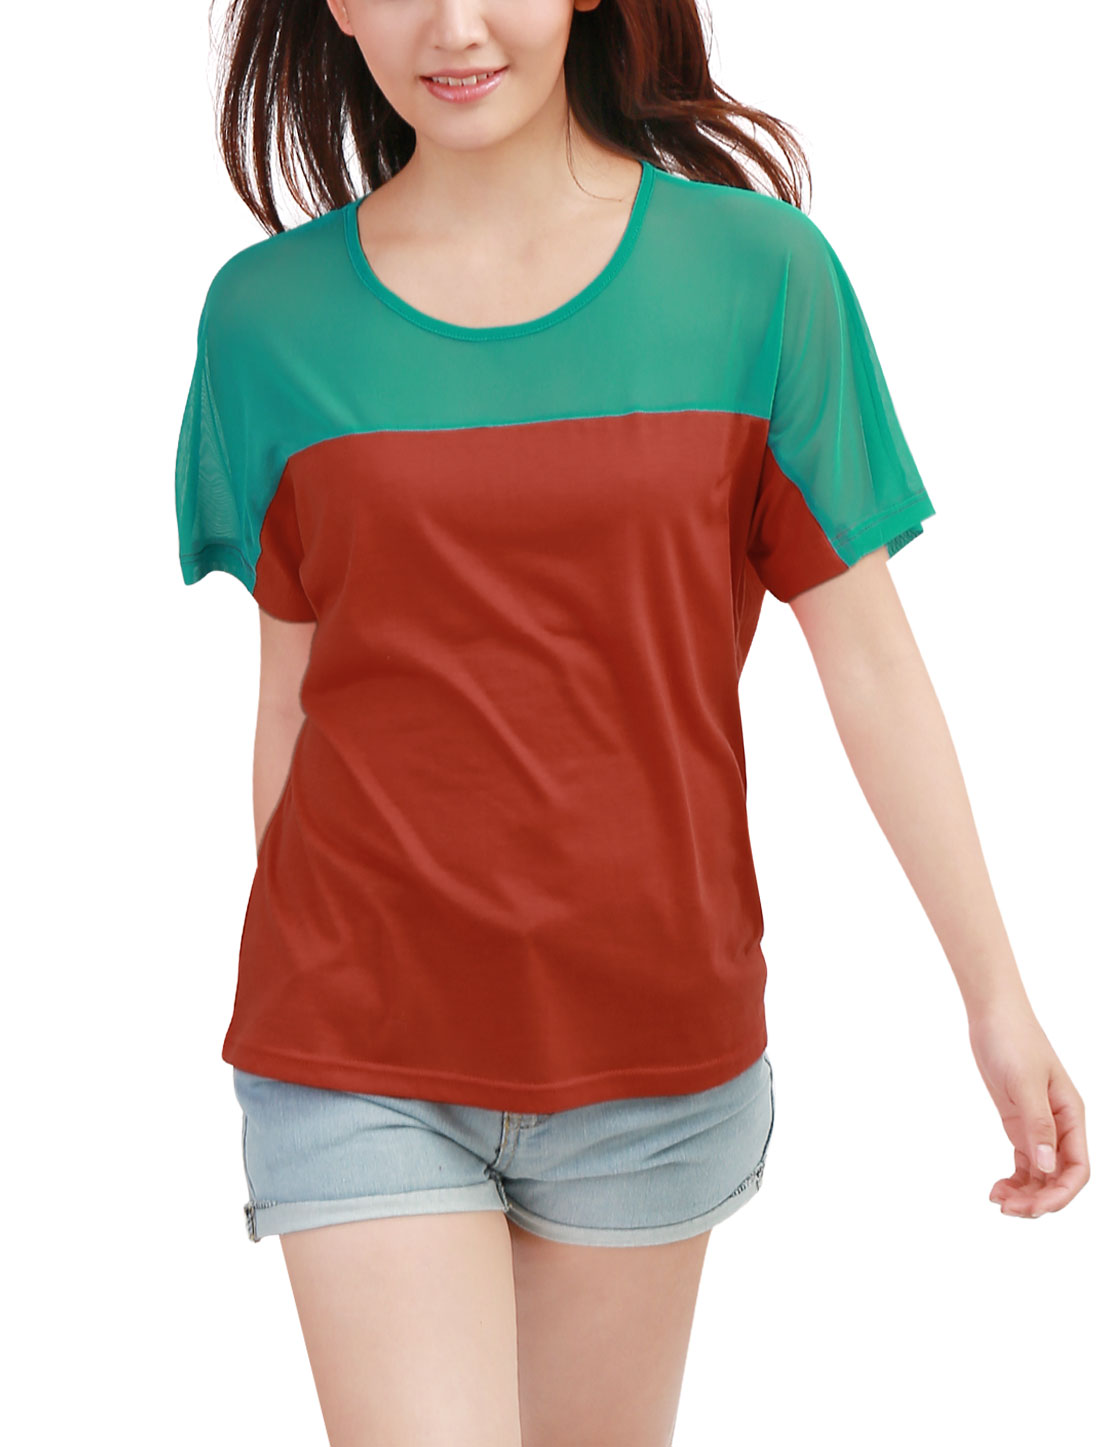 Ladies Chic Scoop Neck Short Dolman Sleeve Dark Orange Green Shirt XL